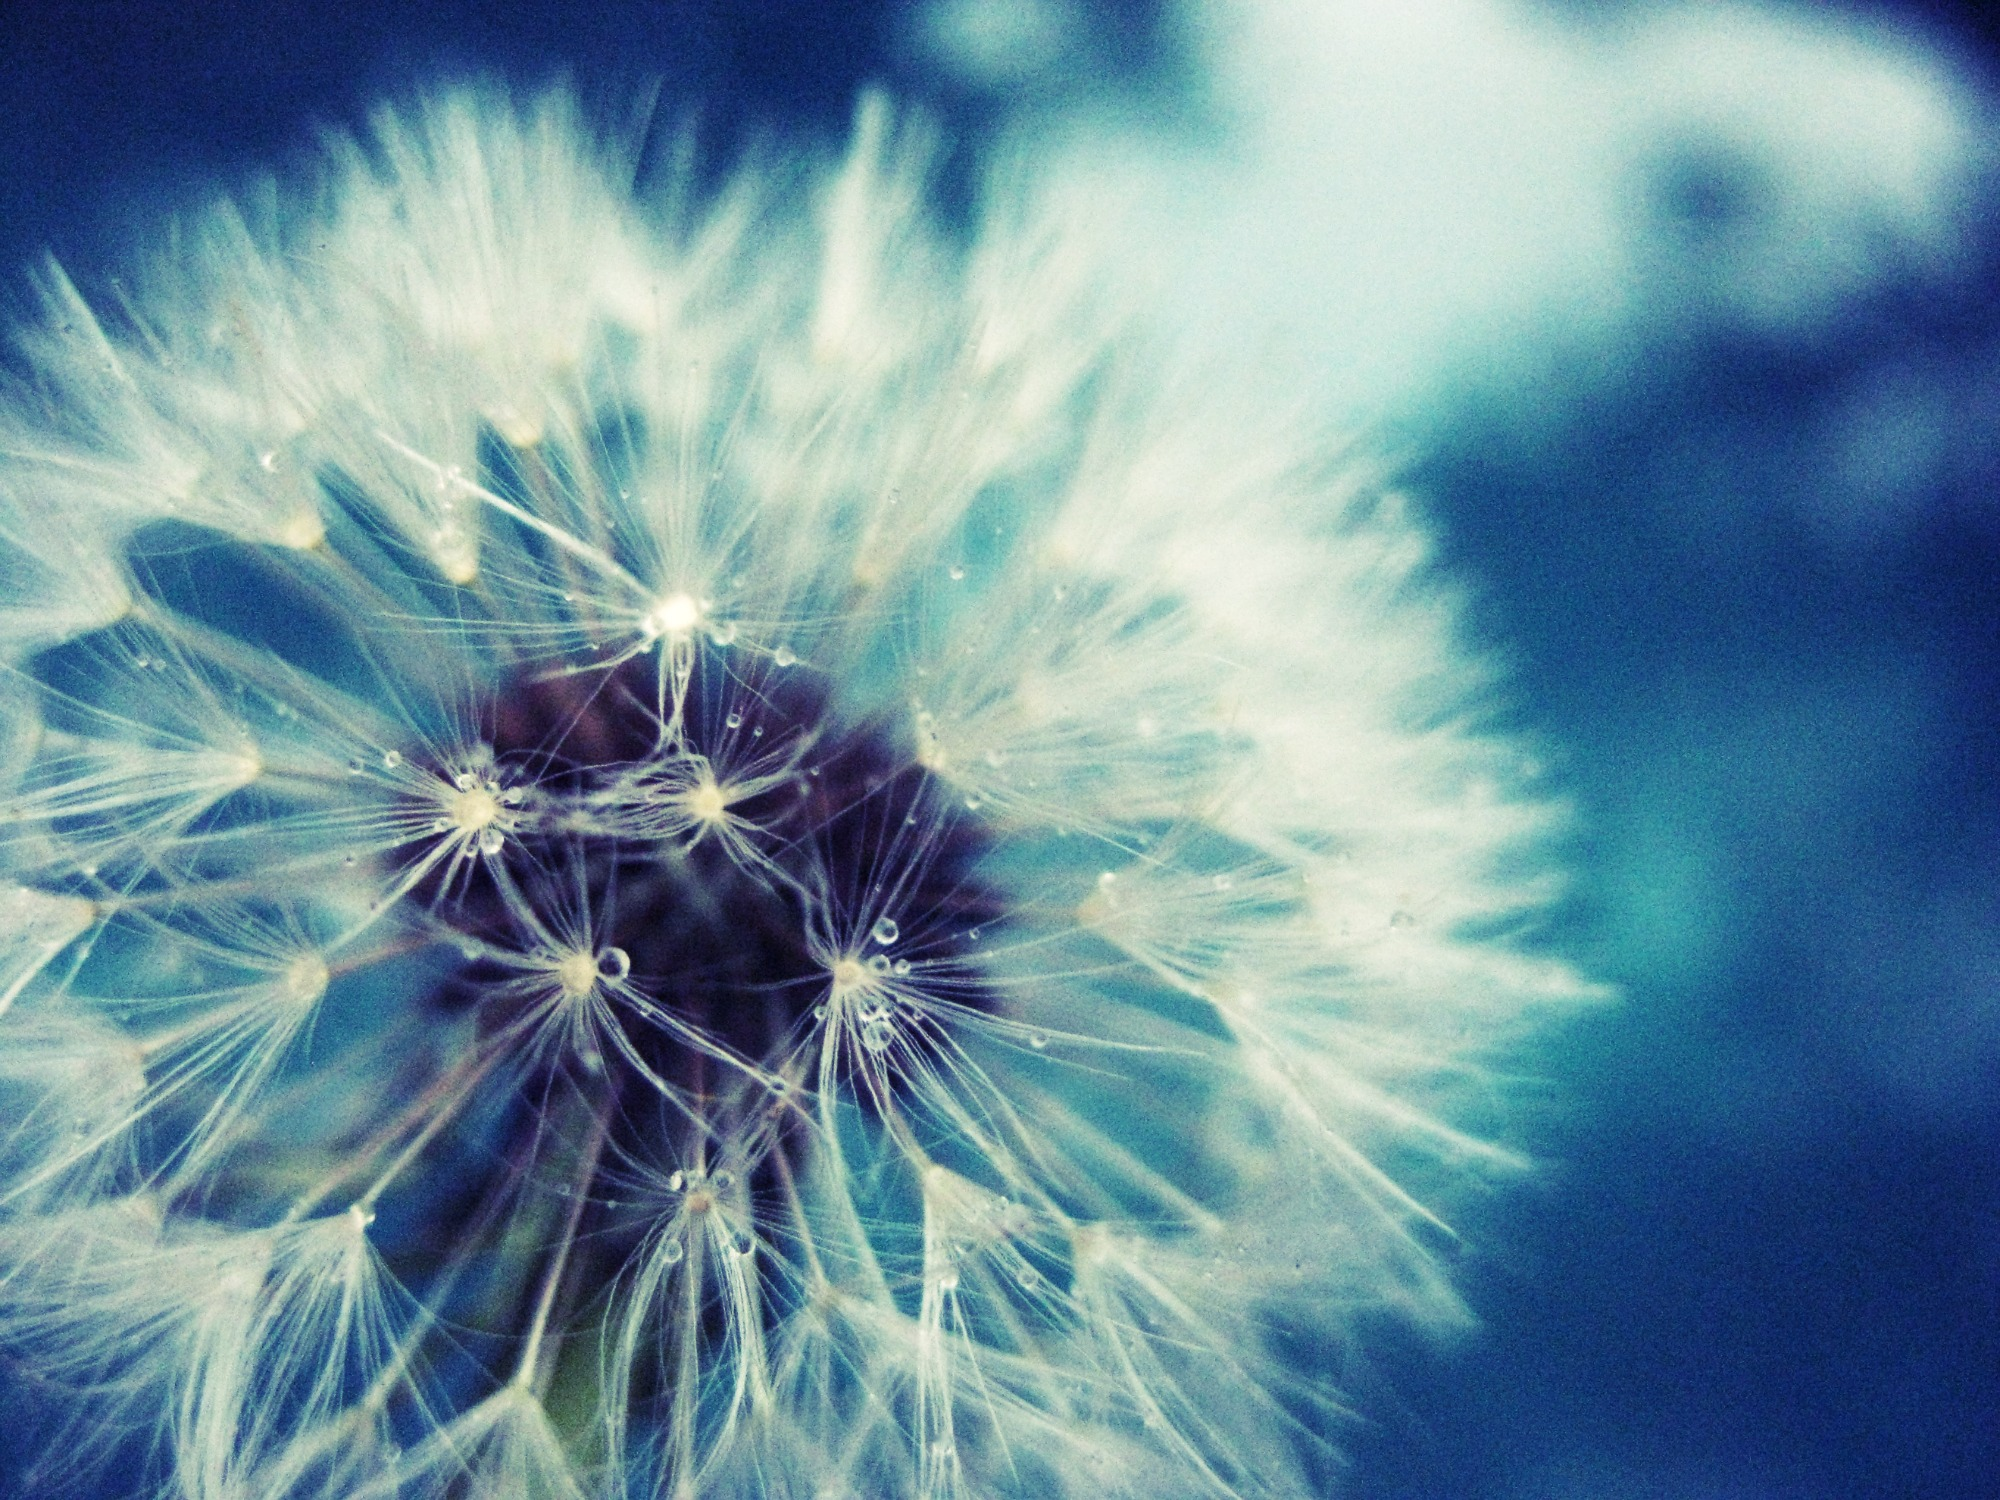 Download Convert View Source Tagged On Flower Wallpaper Dandelion